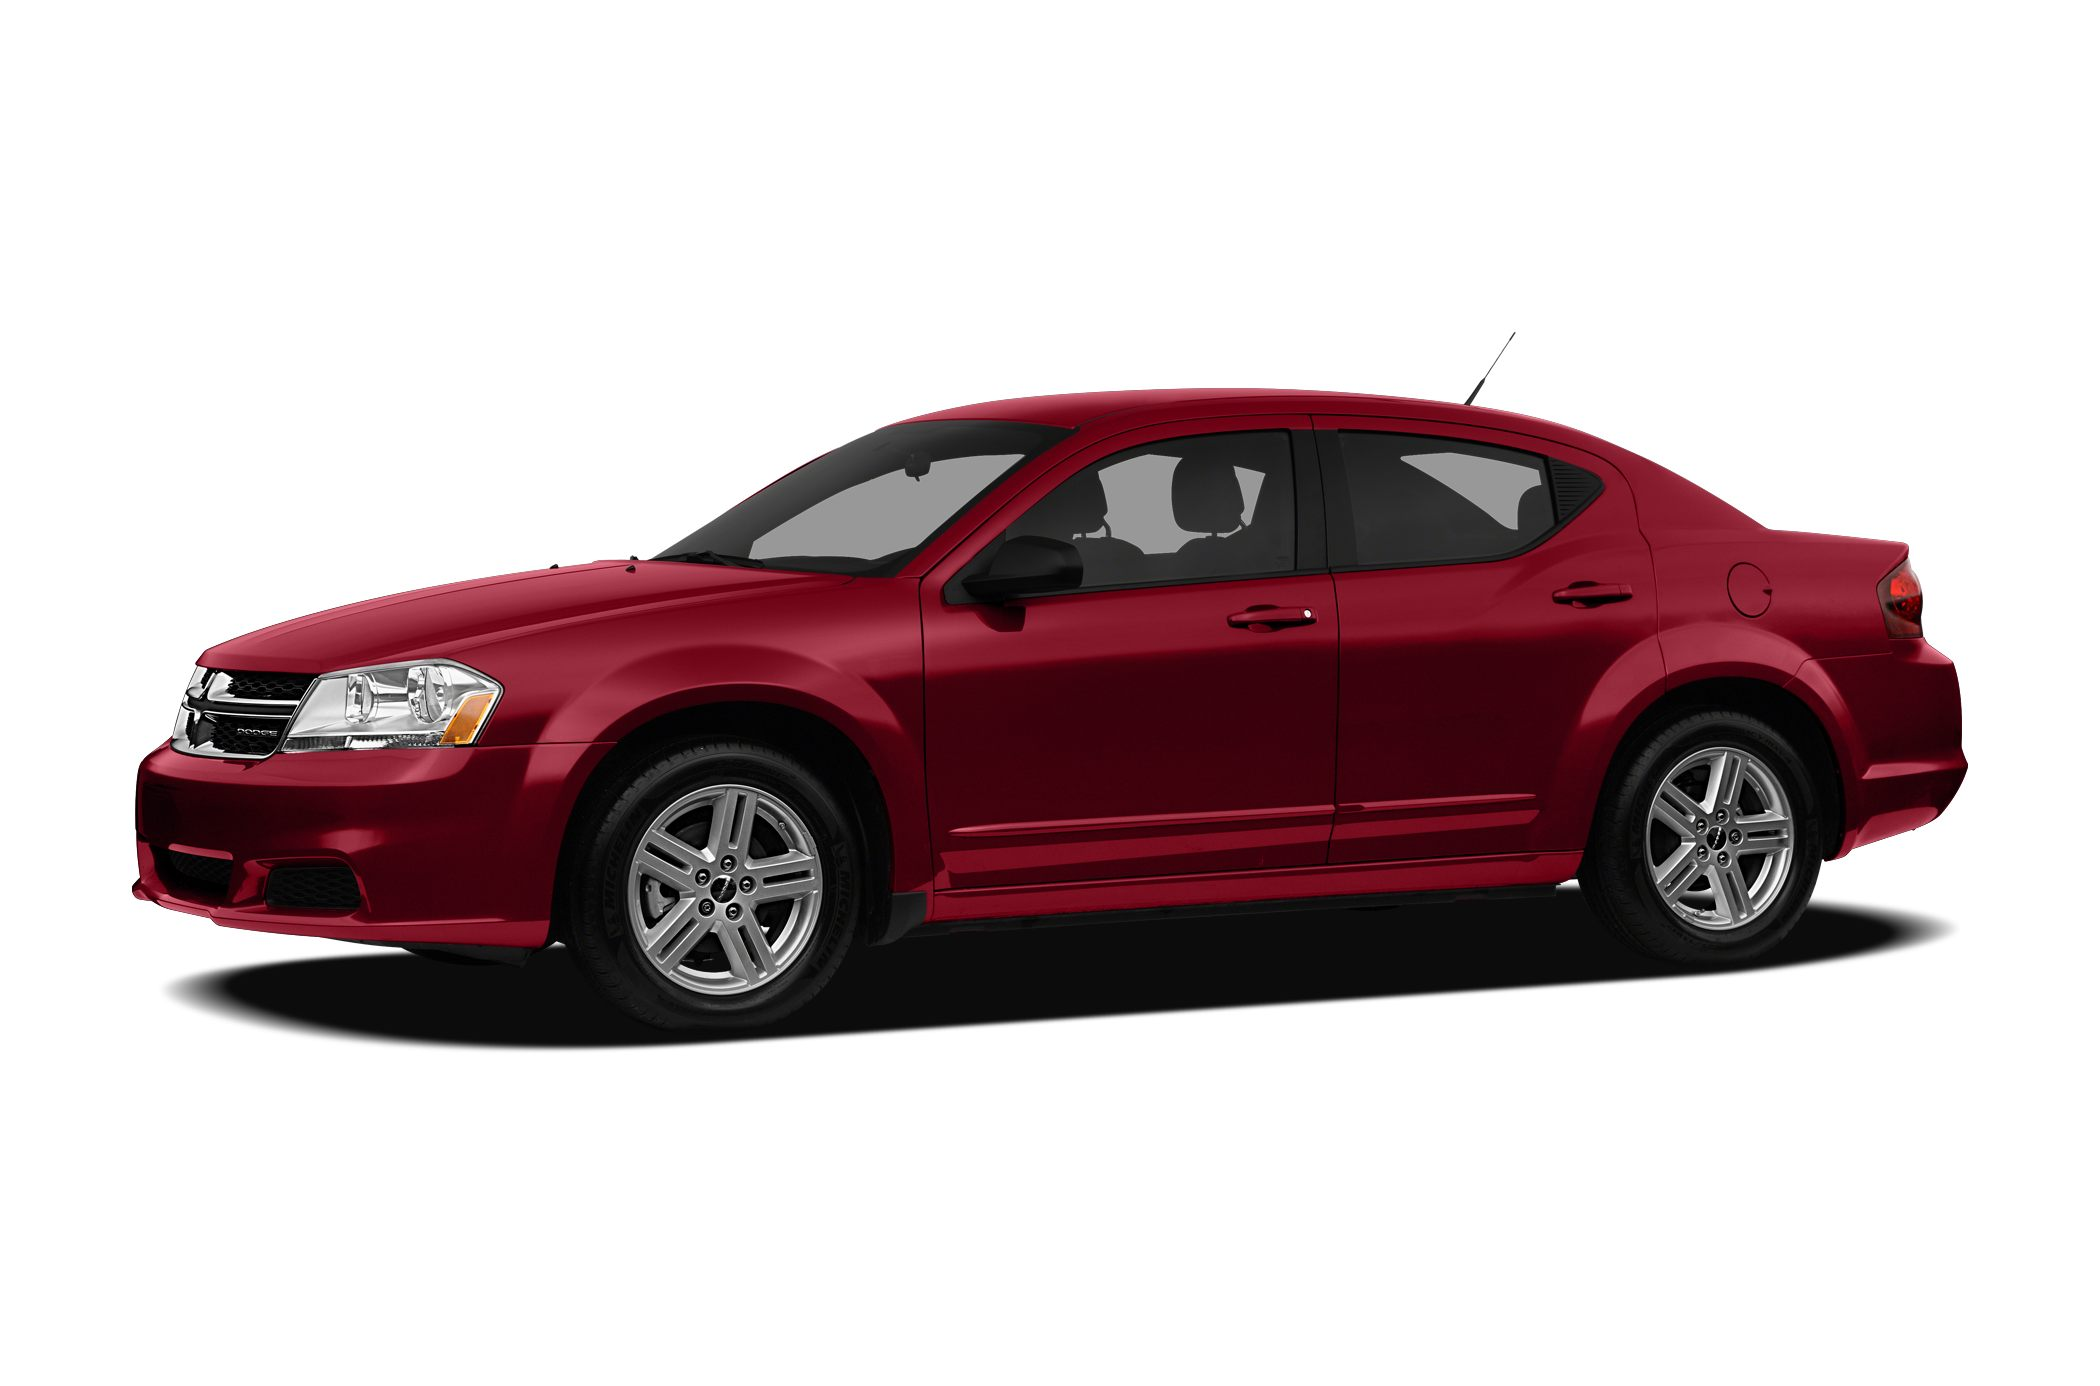 Dodge Avenger: Electrical power outlets